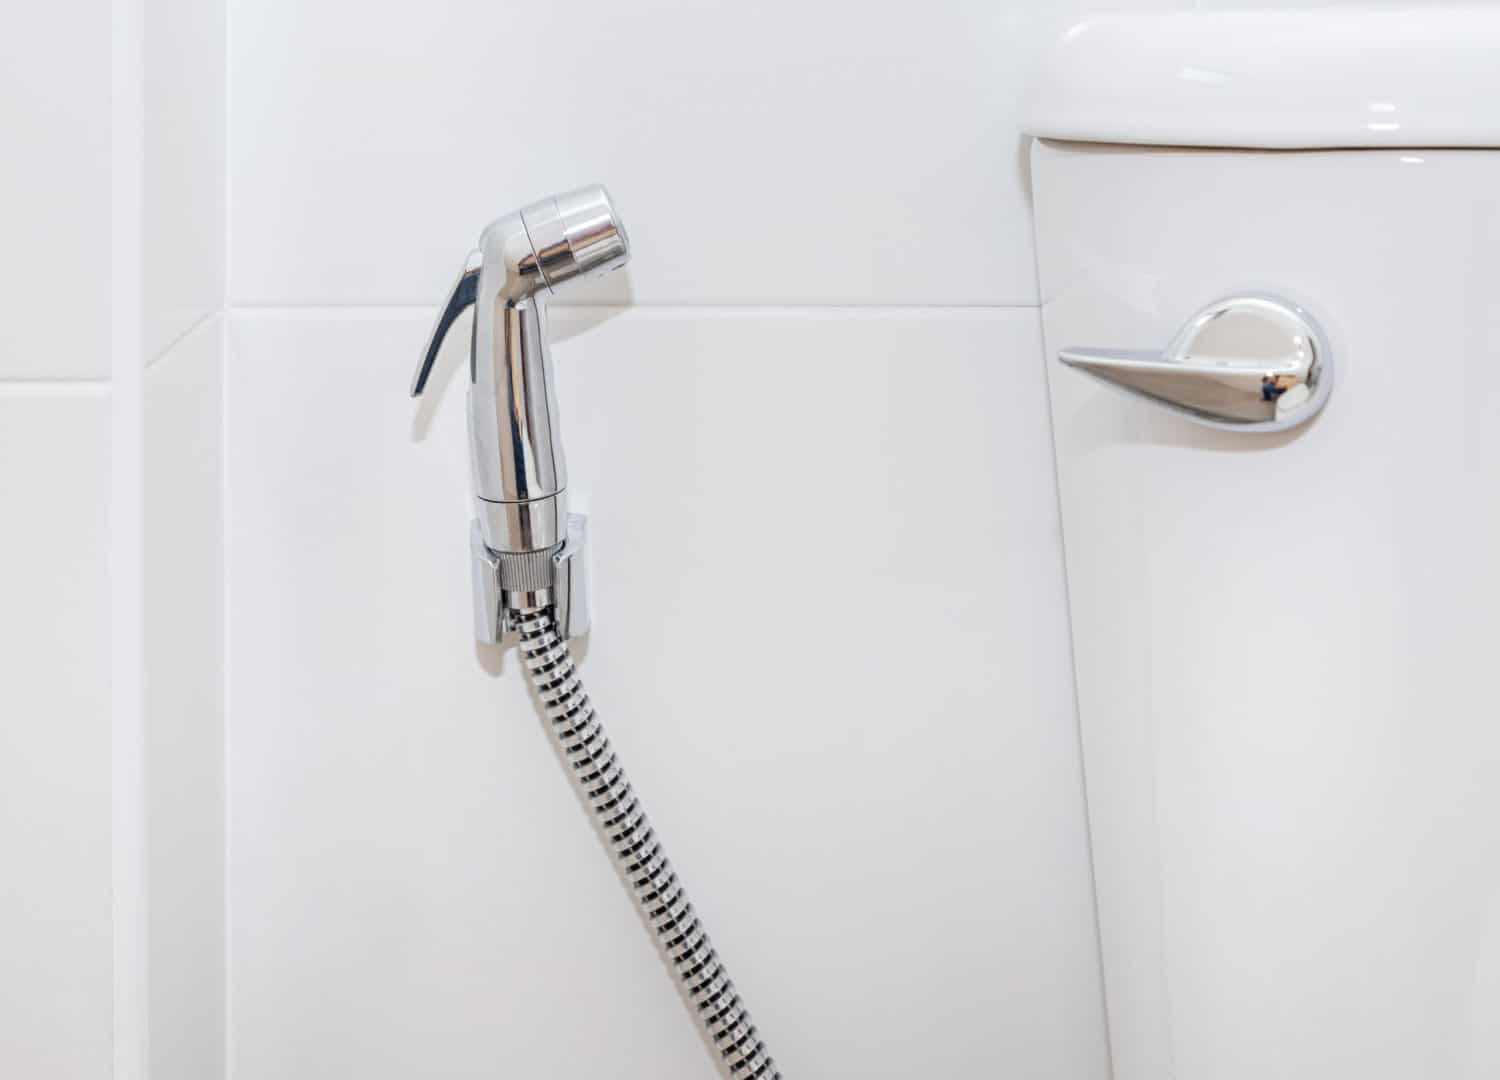 Stainless steel handheld bidet sprayer in toilet bathroom